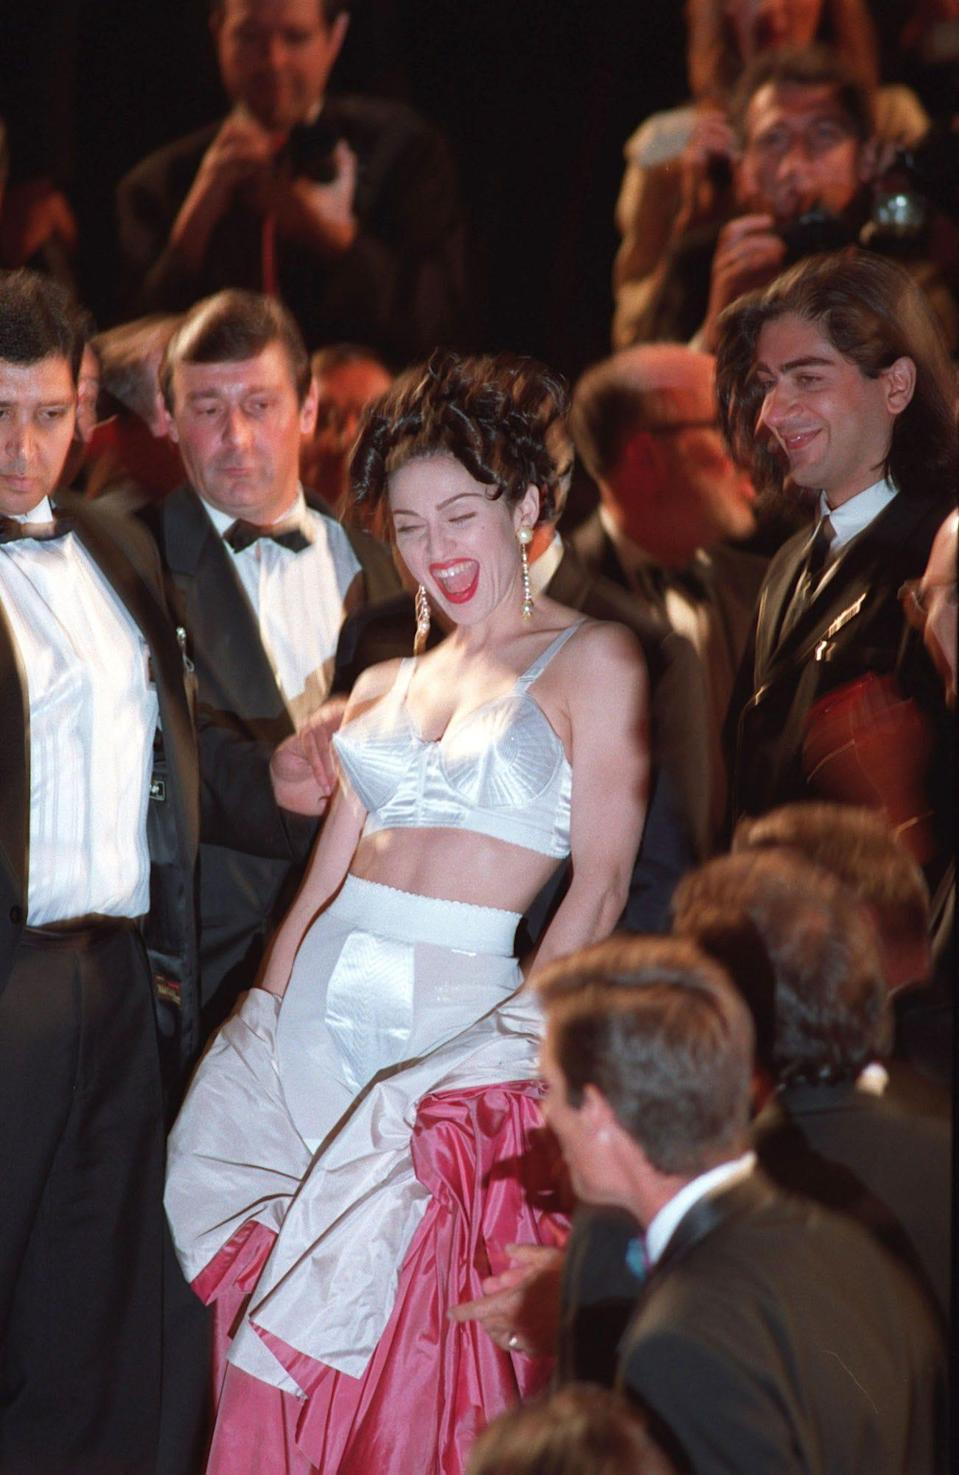 Madonna wears a white bra, matching shorts, and a pink robe at the 1991 Cannes Film Festival.